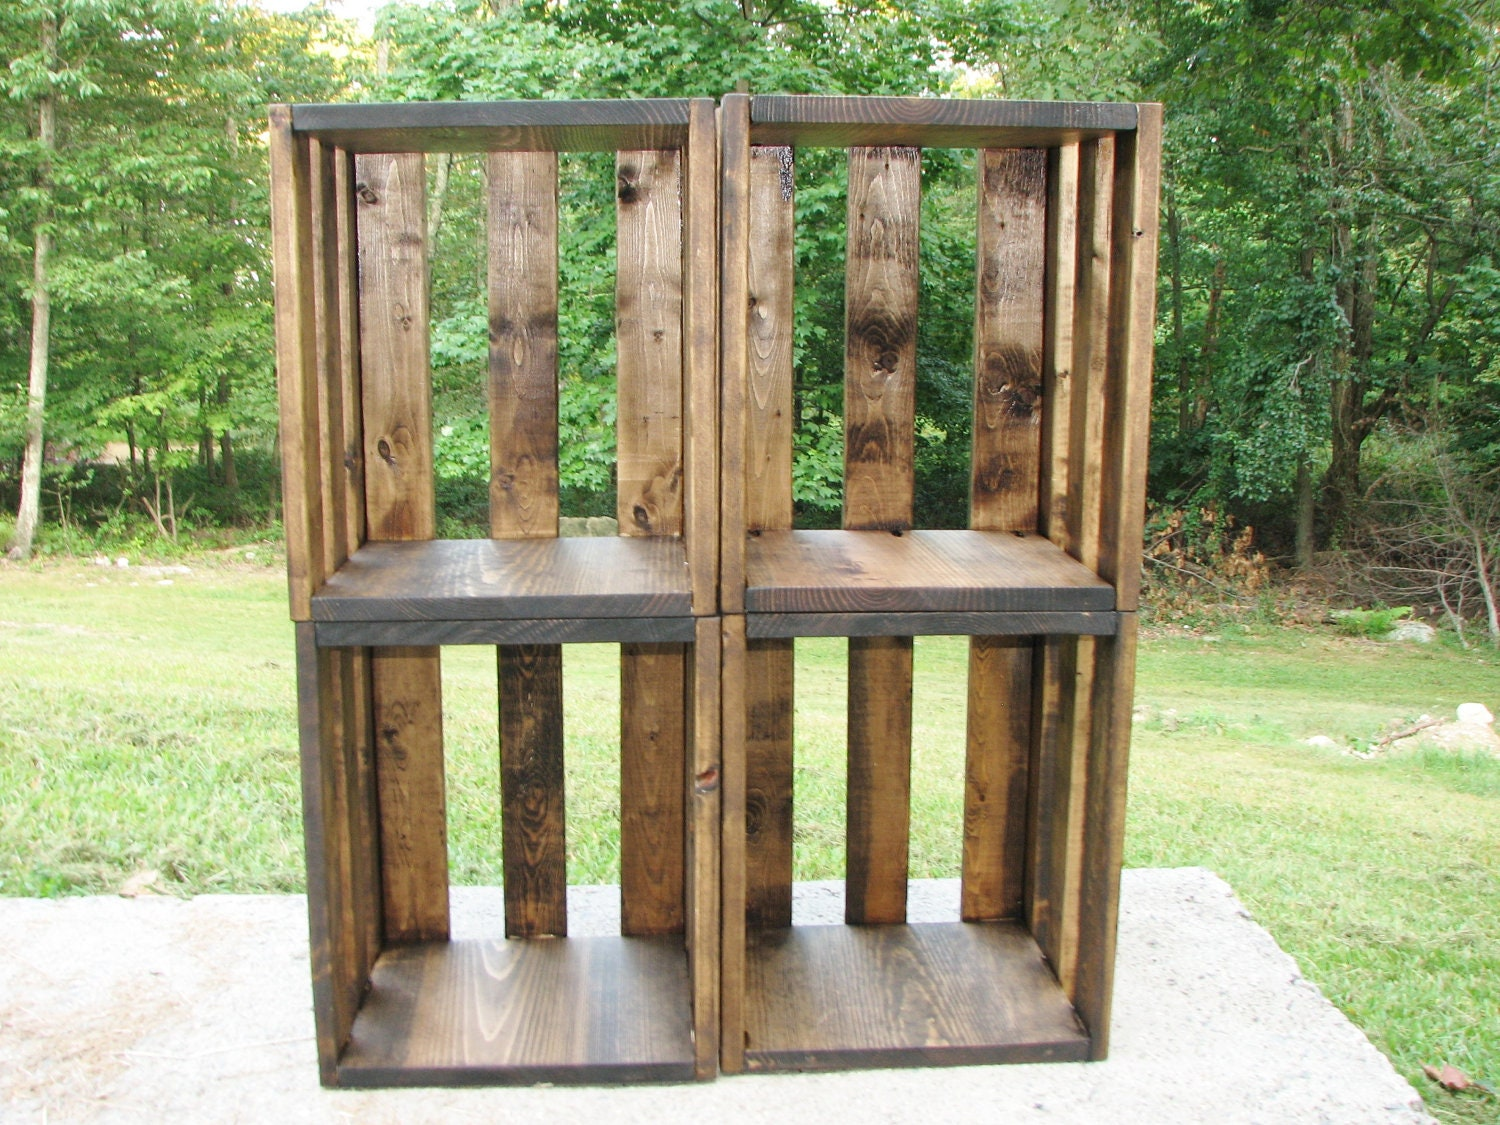 Crate shelf free shipping wood furniture rustic storage